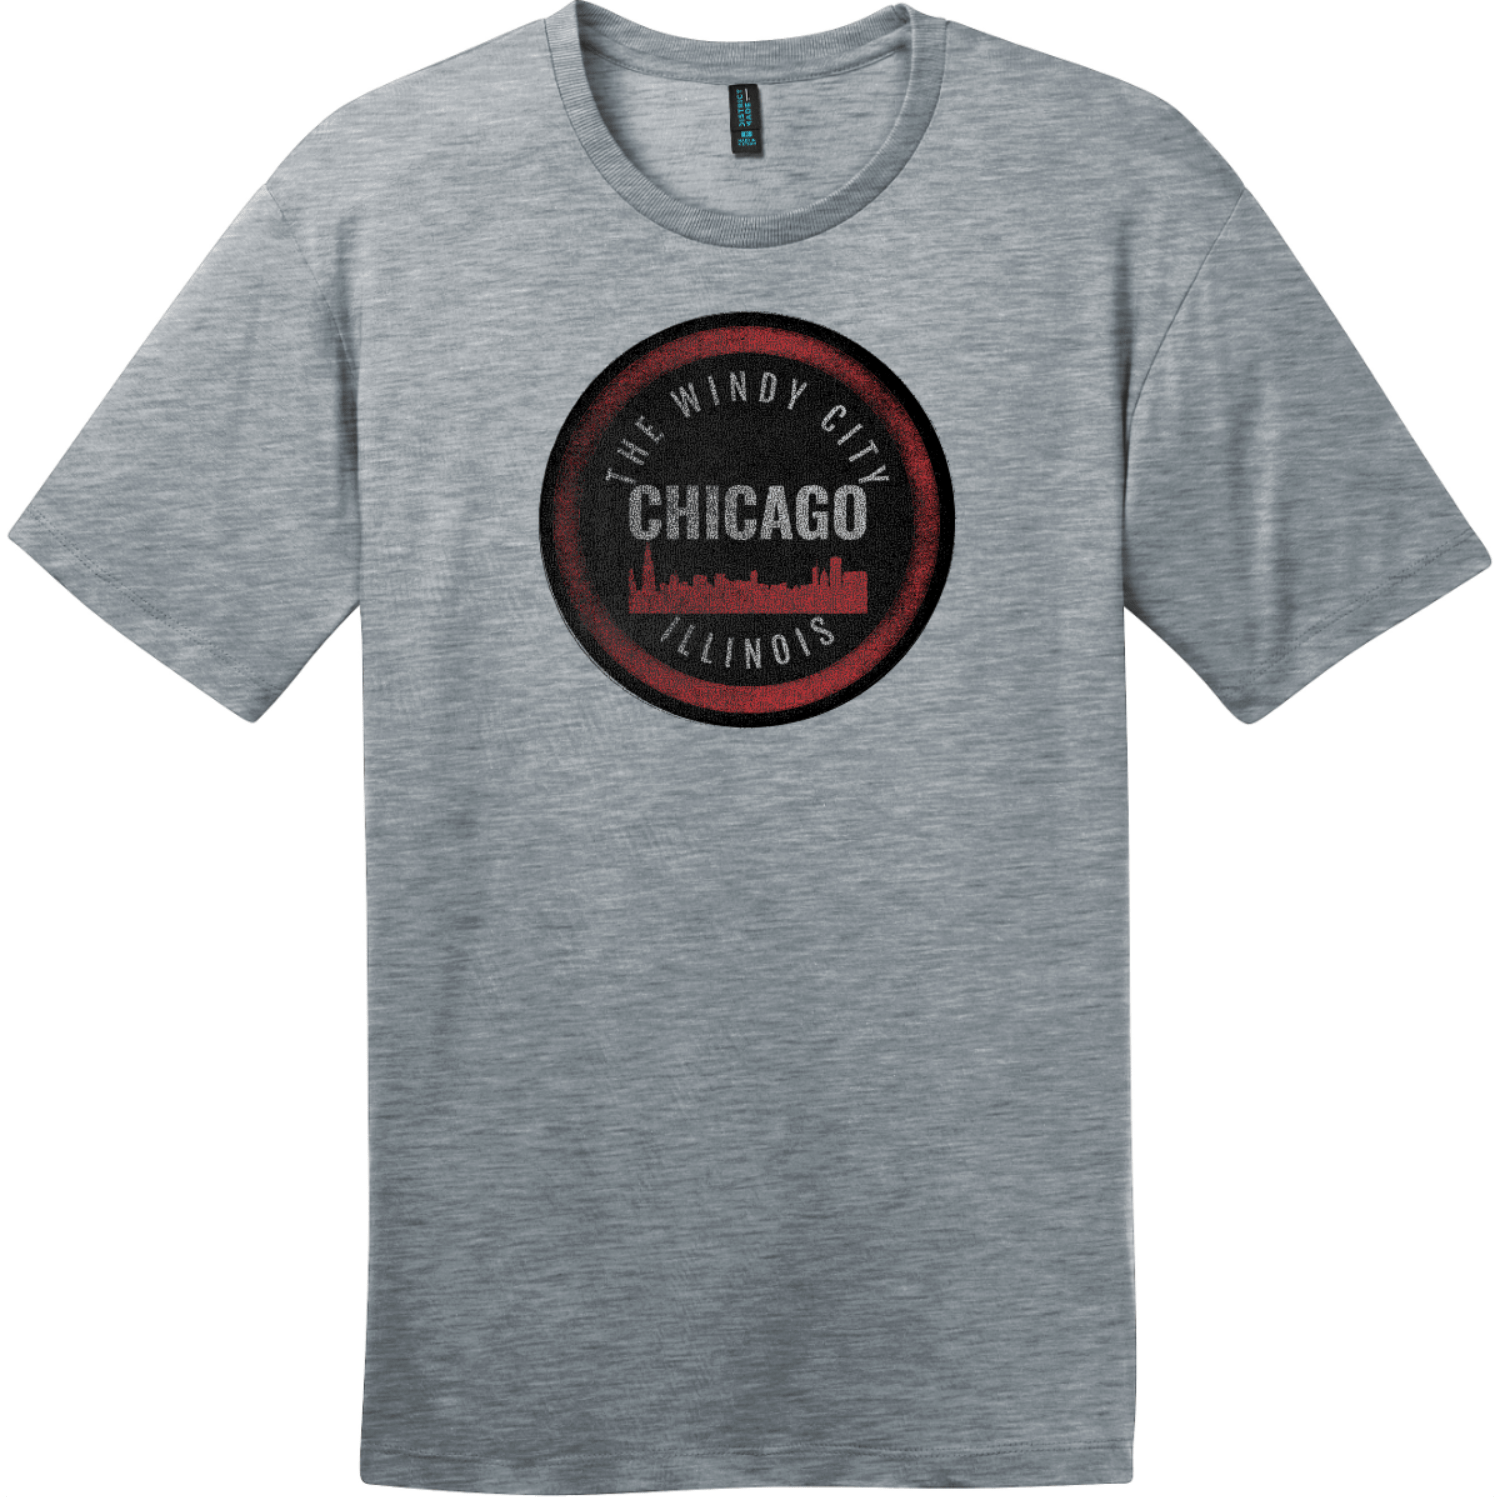 Chicago Illinois The Windy City T-Shirt Heathered Steel District Perfect Weight Tee DT104